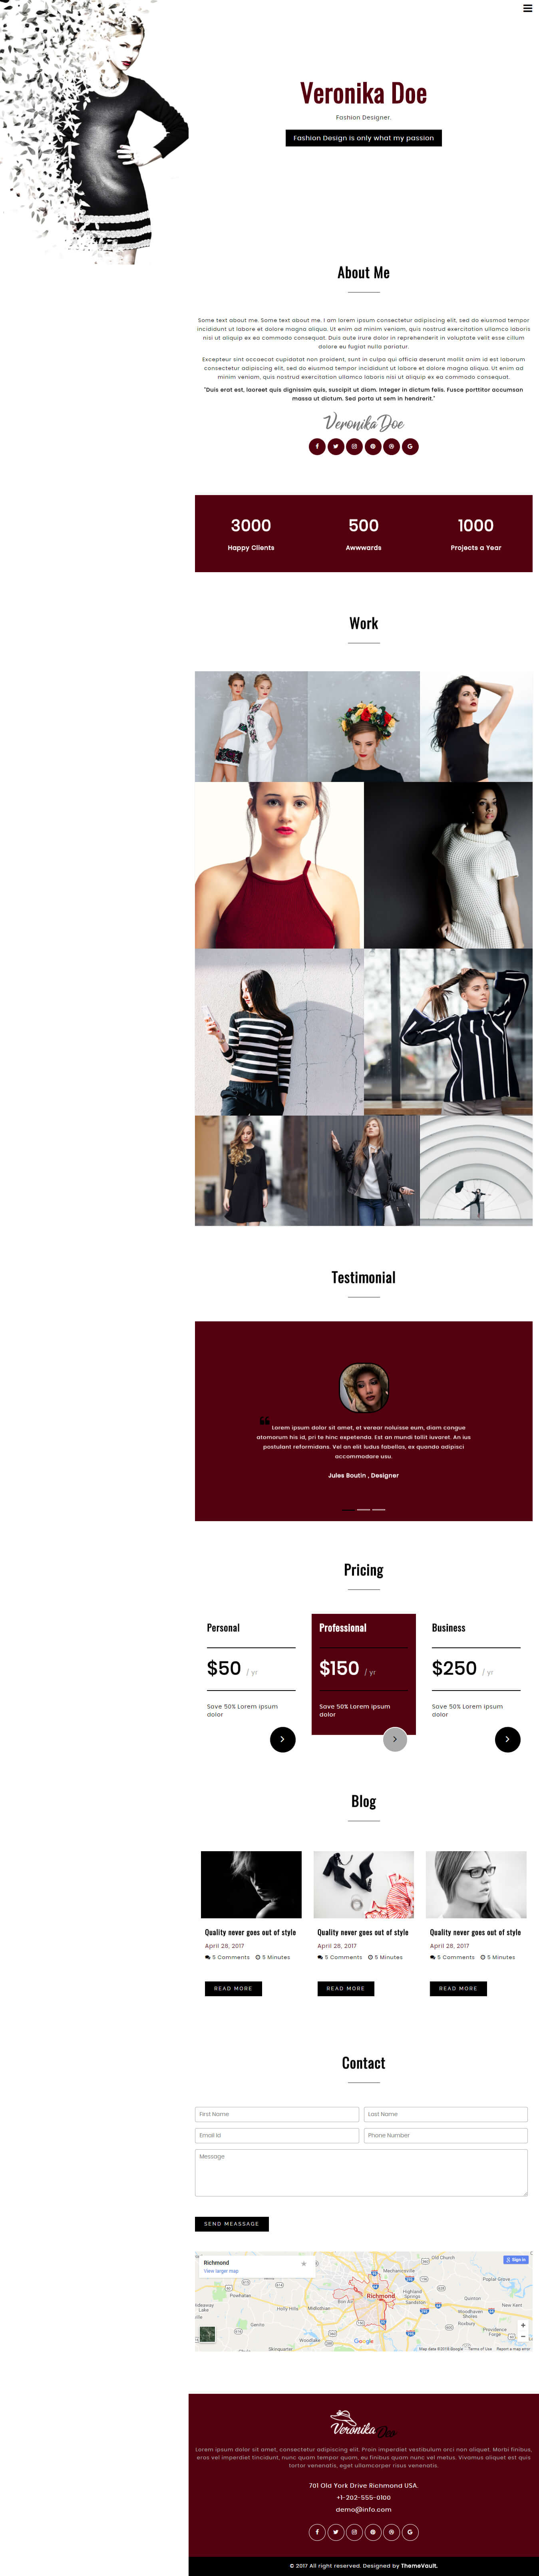 VeronikaDoe – Free Fashion Design Portfolio Template HTML5